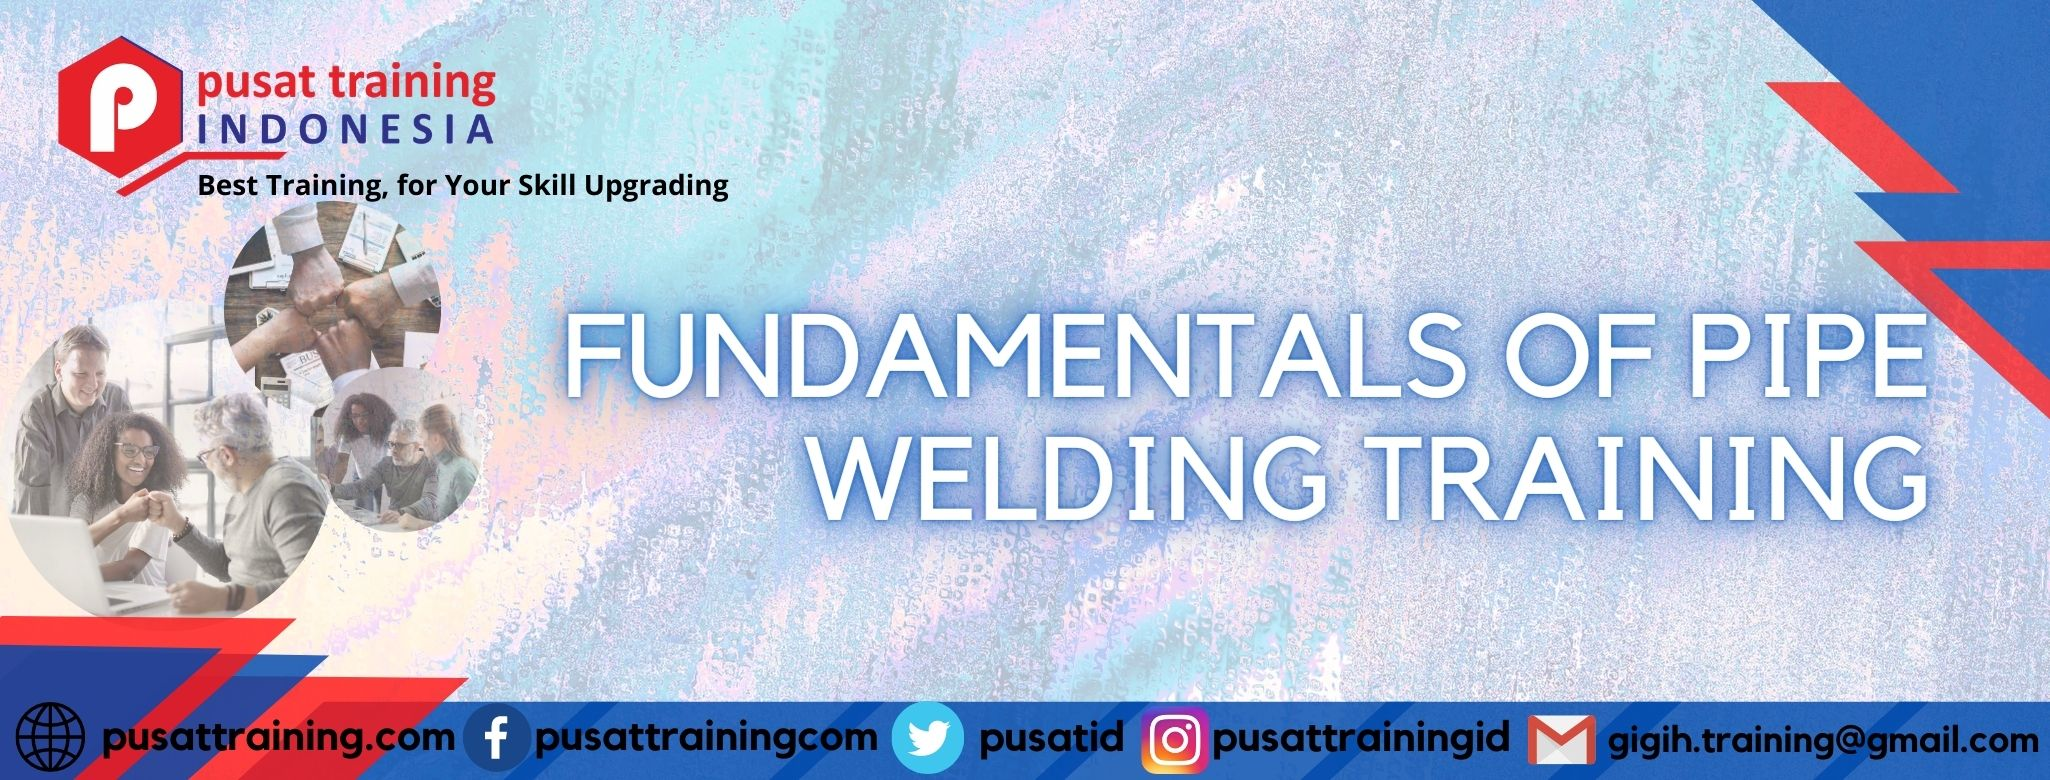 fundamentals-of-pipe-welding-training